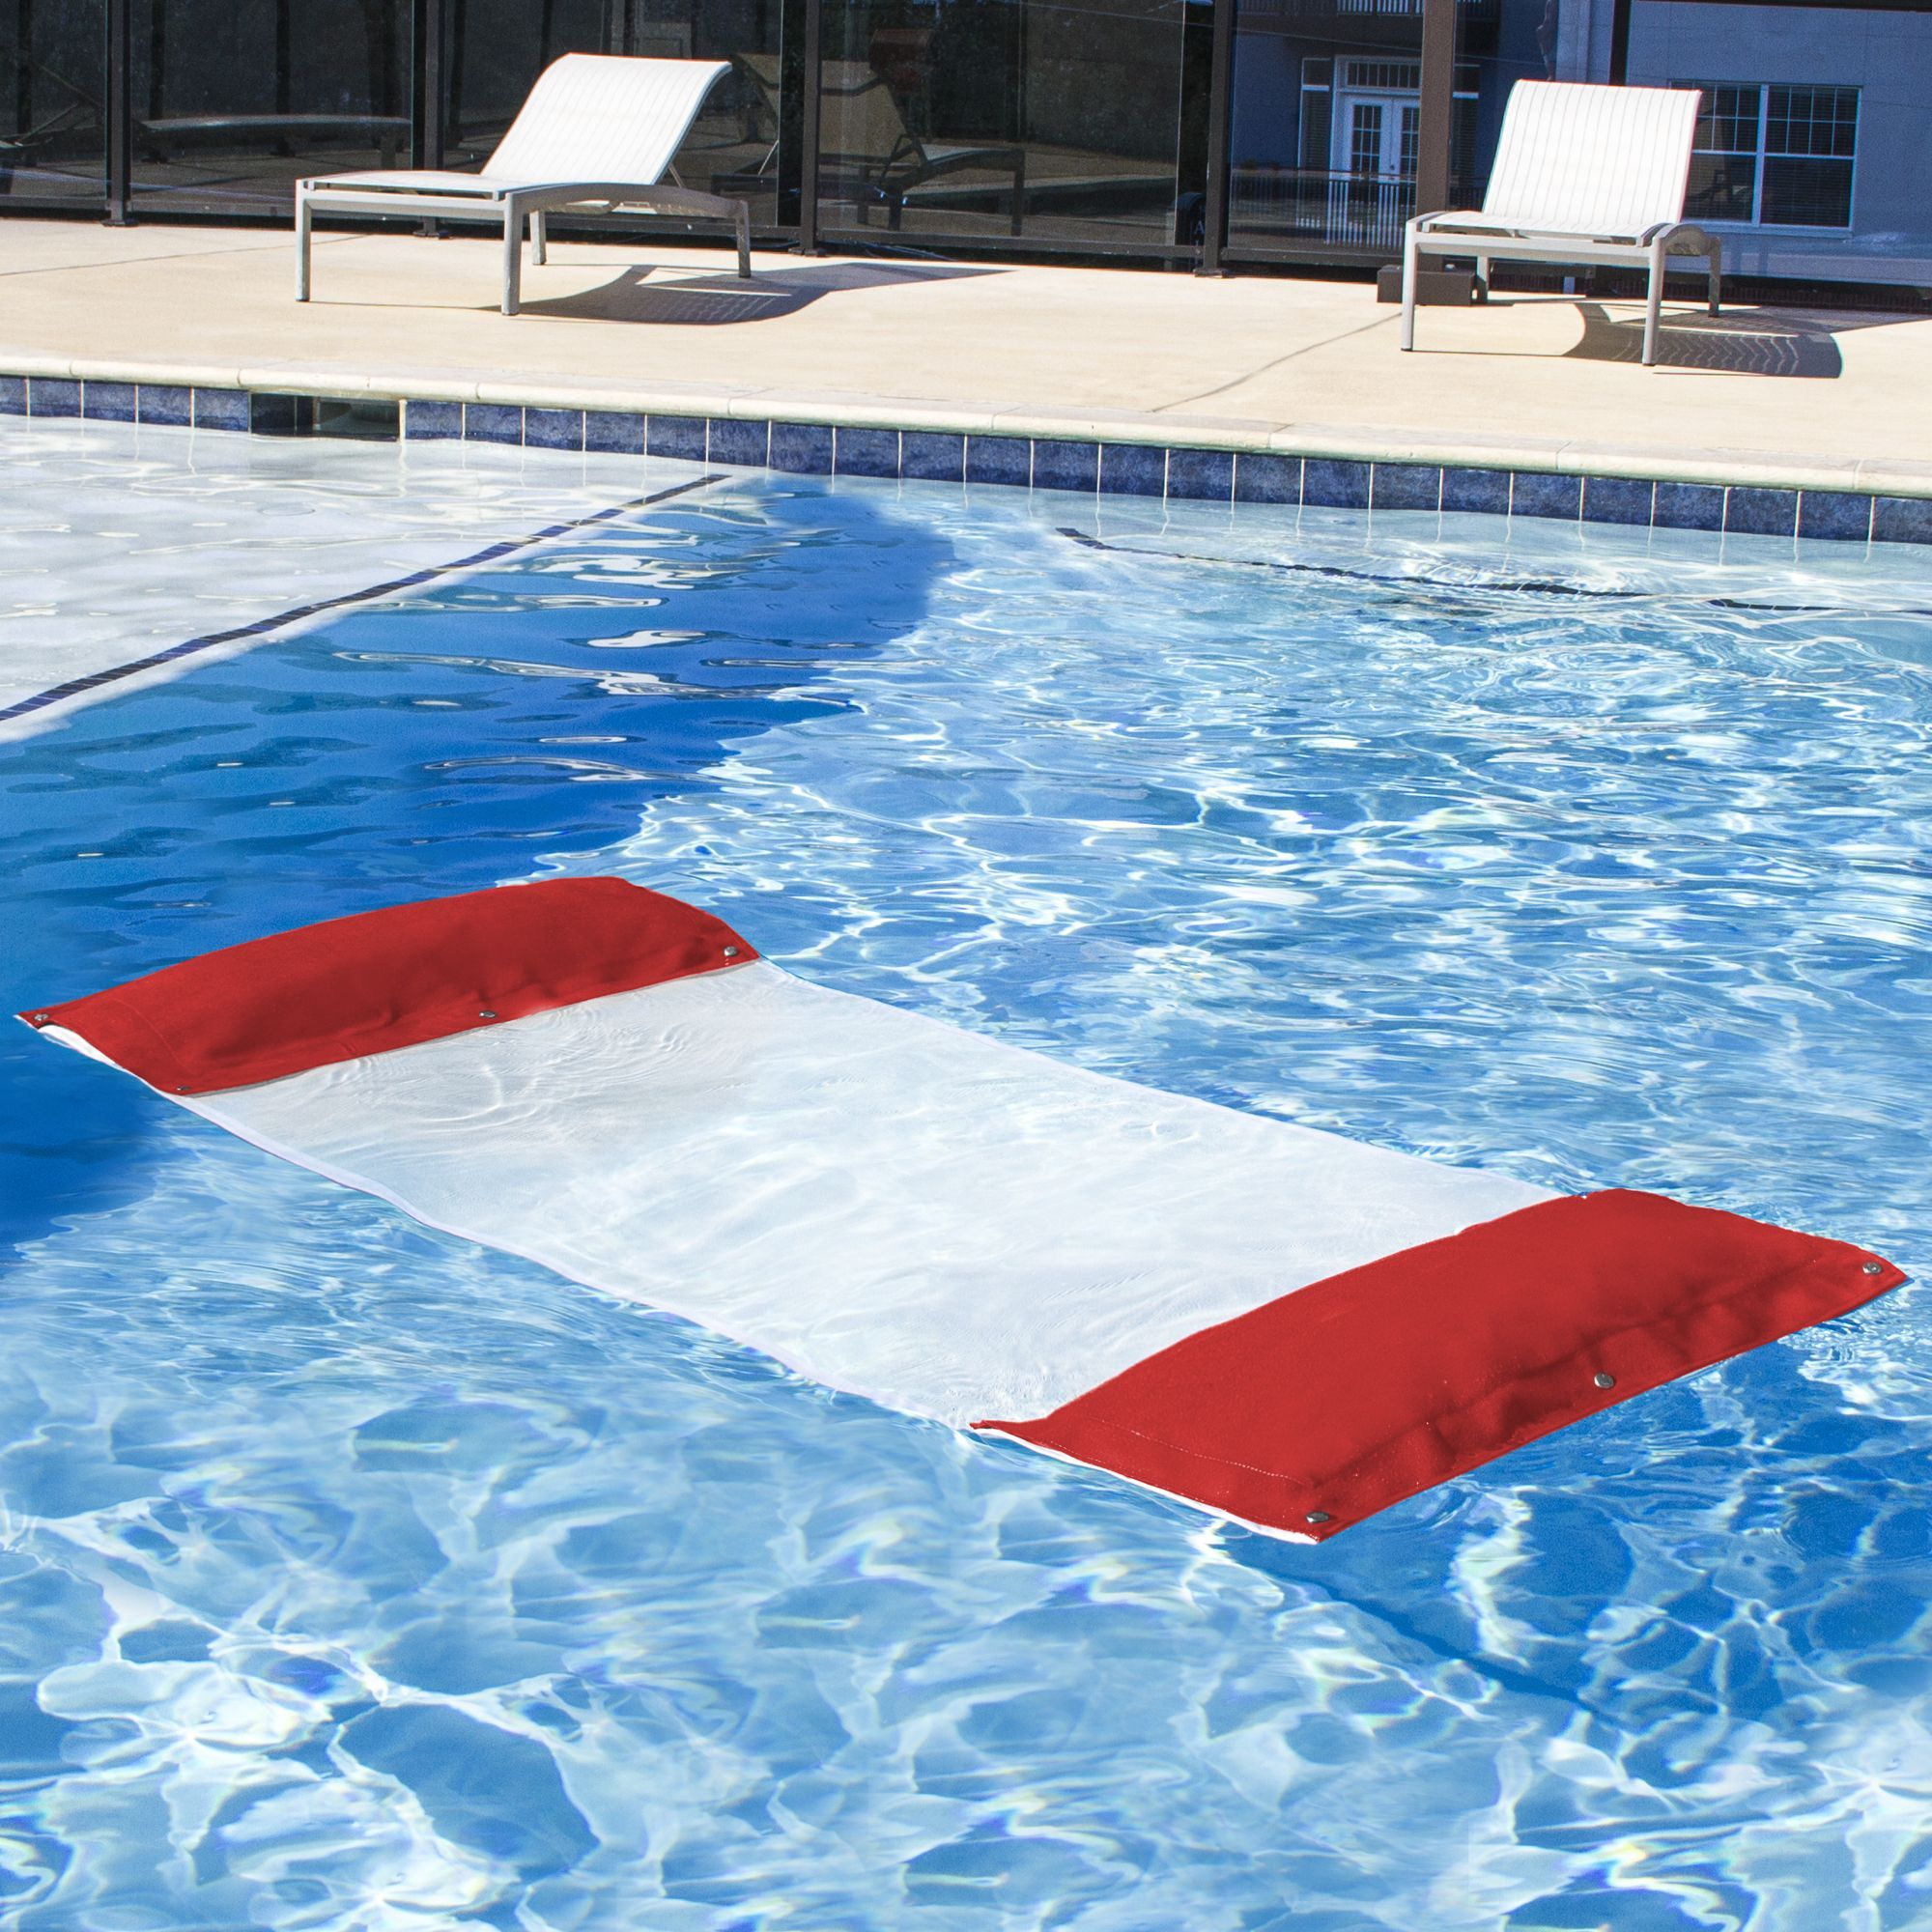 Jaxx Capri Hammock Pool Float random Pinterest